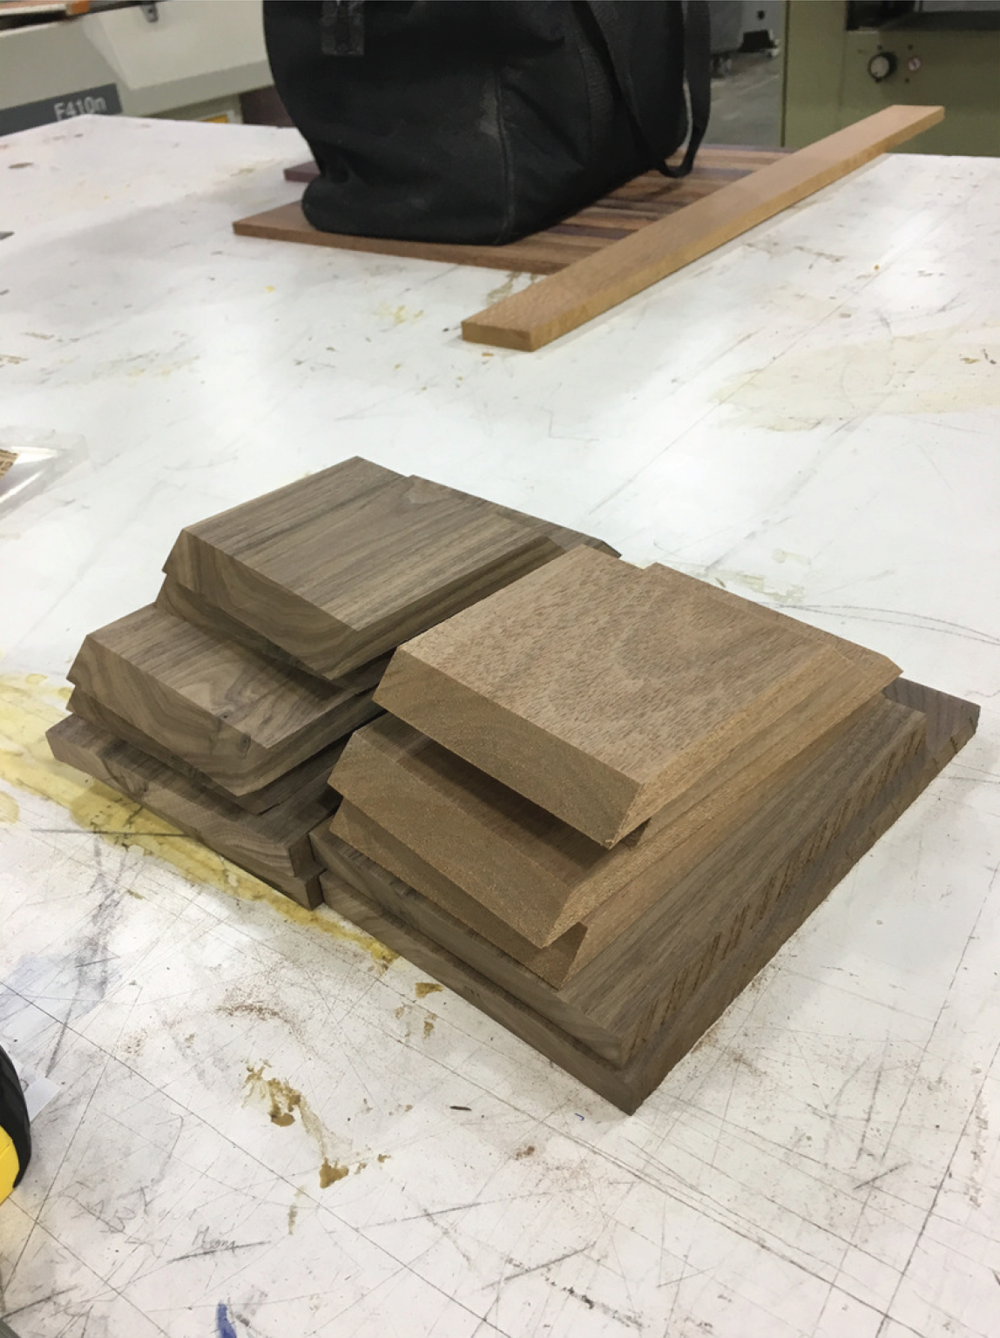 1. Firstly, the rough walnut wood was jointed and planed, then cut into rough dimensions. Then the sides were cut at a 45 degree angle to allow glue up .